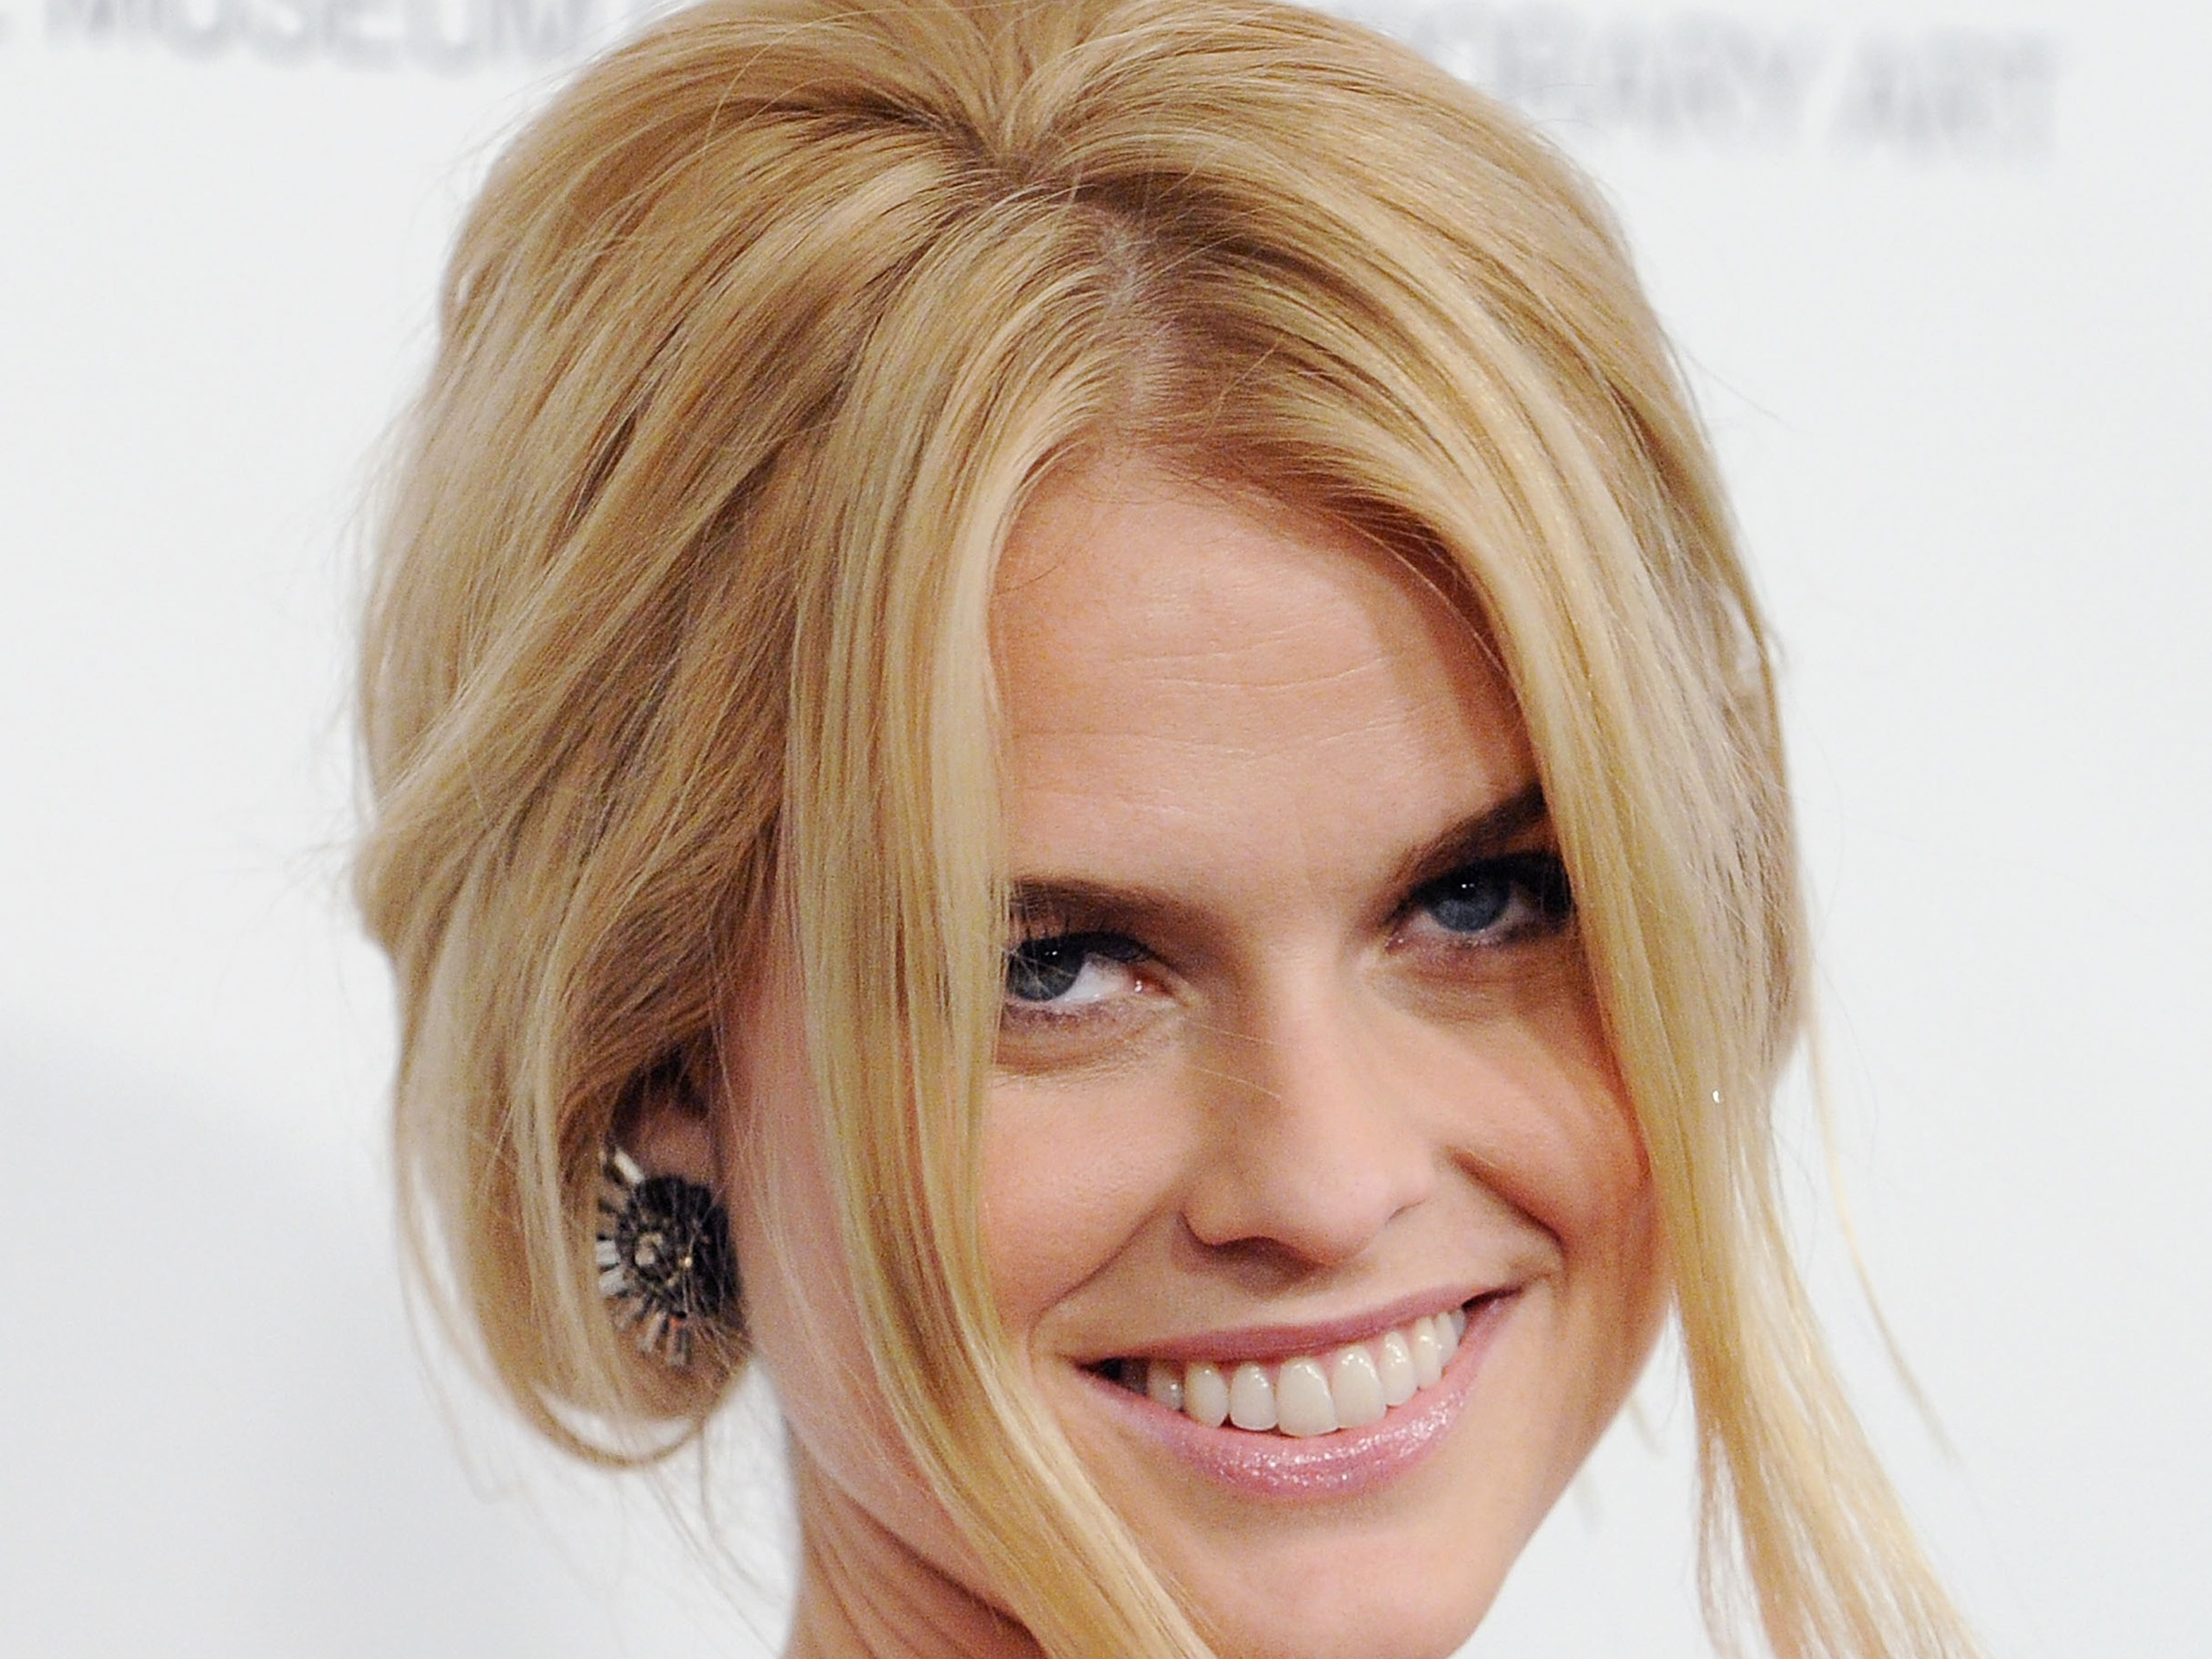 alice eve smile wallpaper background 56359